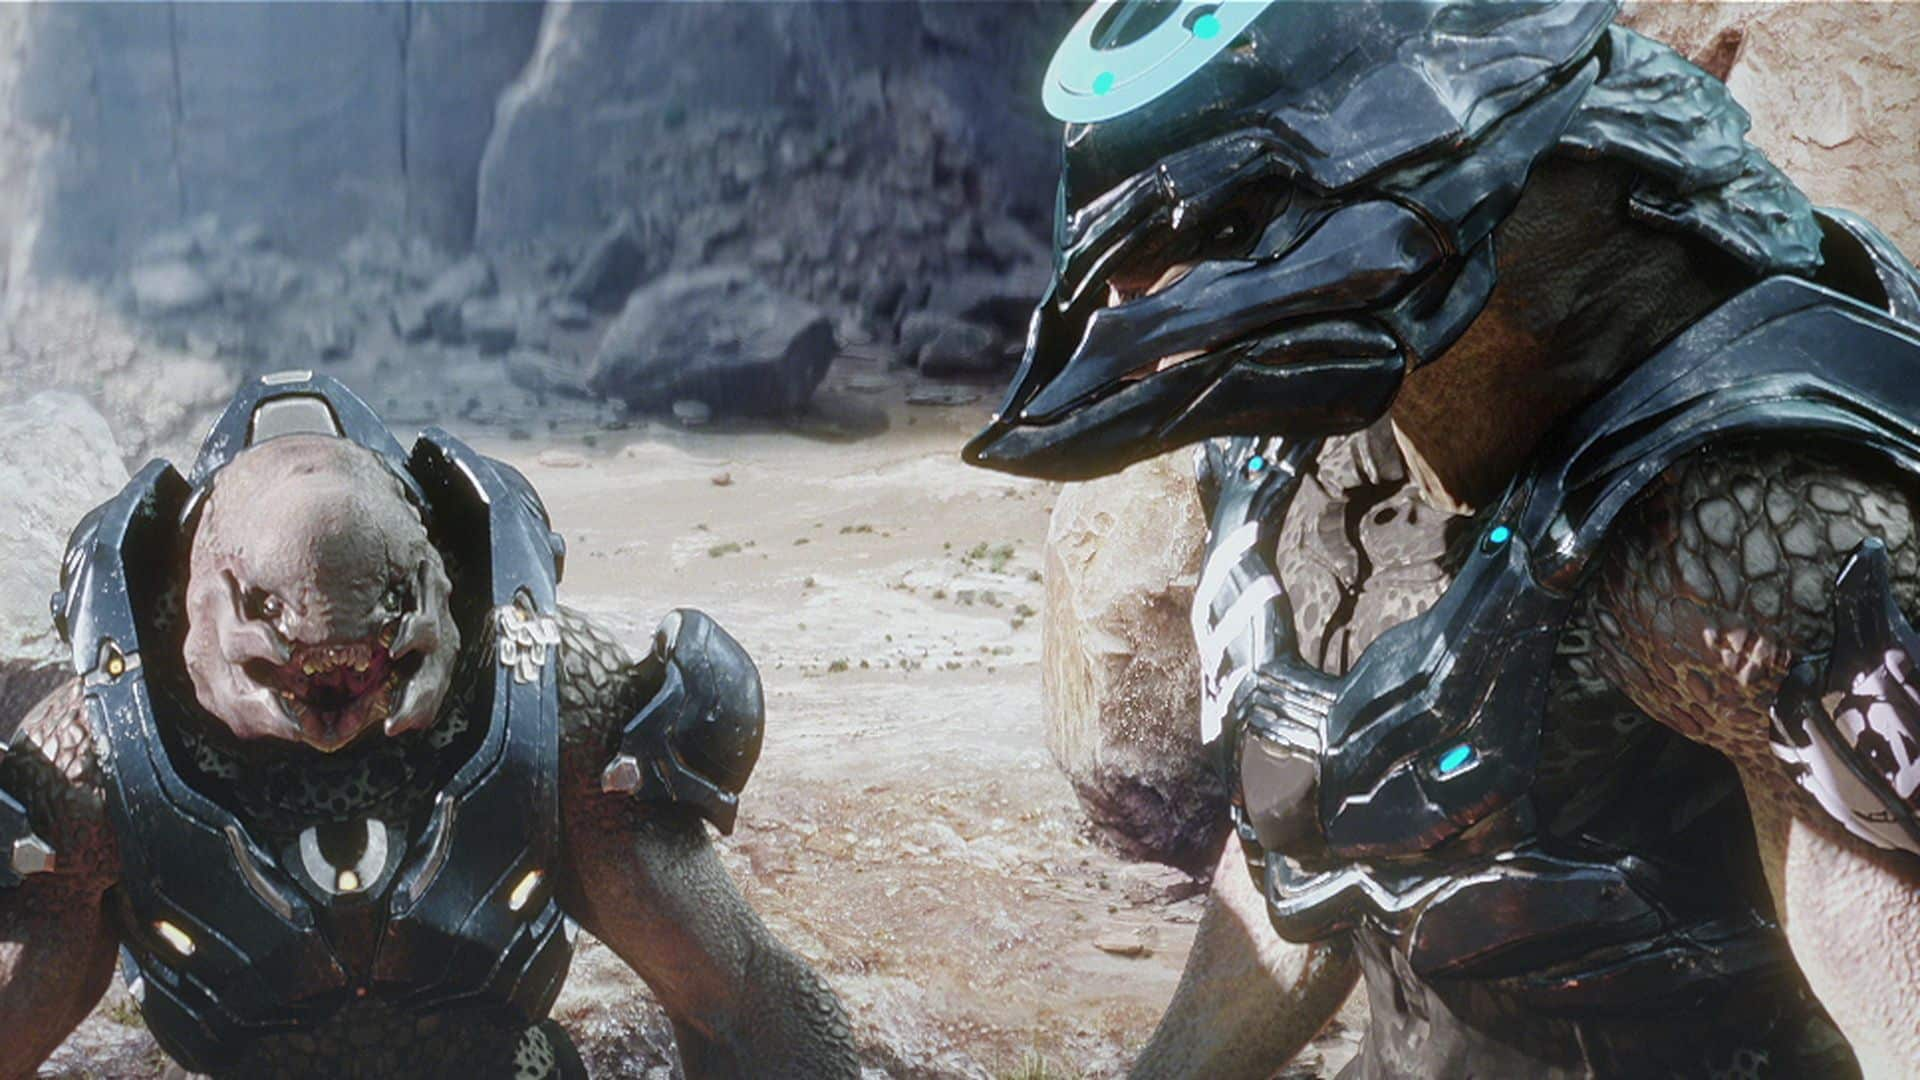 Halo 4: Spartan Ops 343 Industries Microsoft years of content updates for a live platform